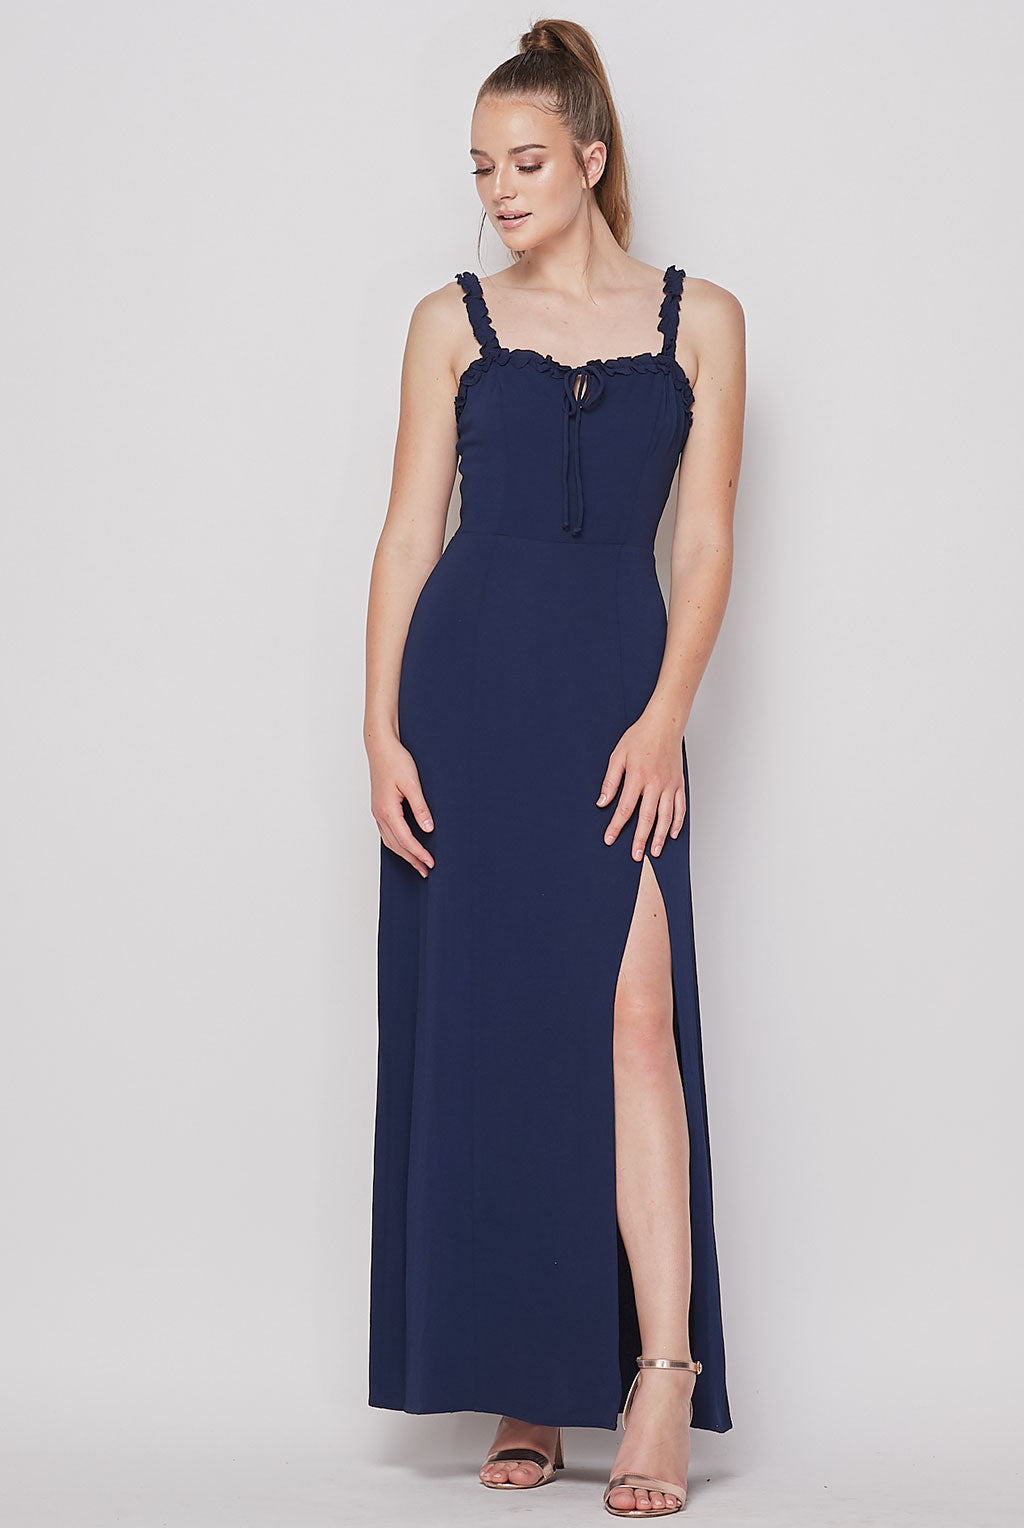 Teeze Me | Sleeveless Solid Front Slit Maxi Dress | Navy